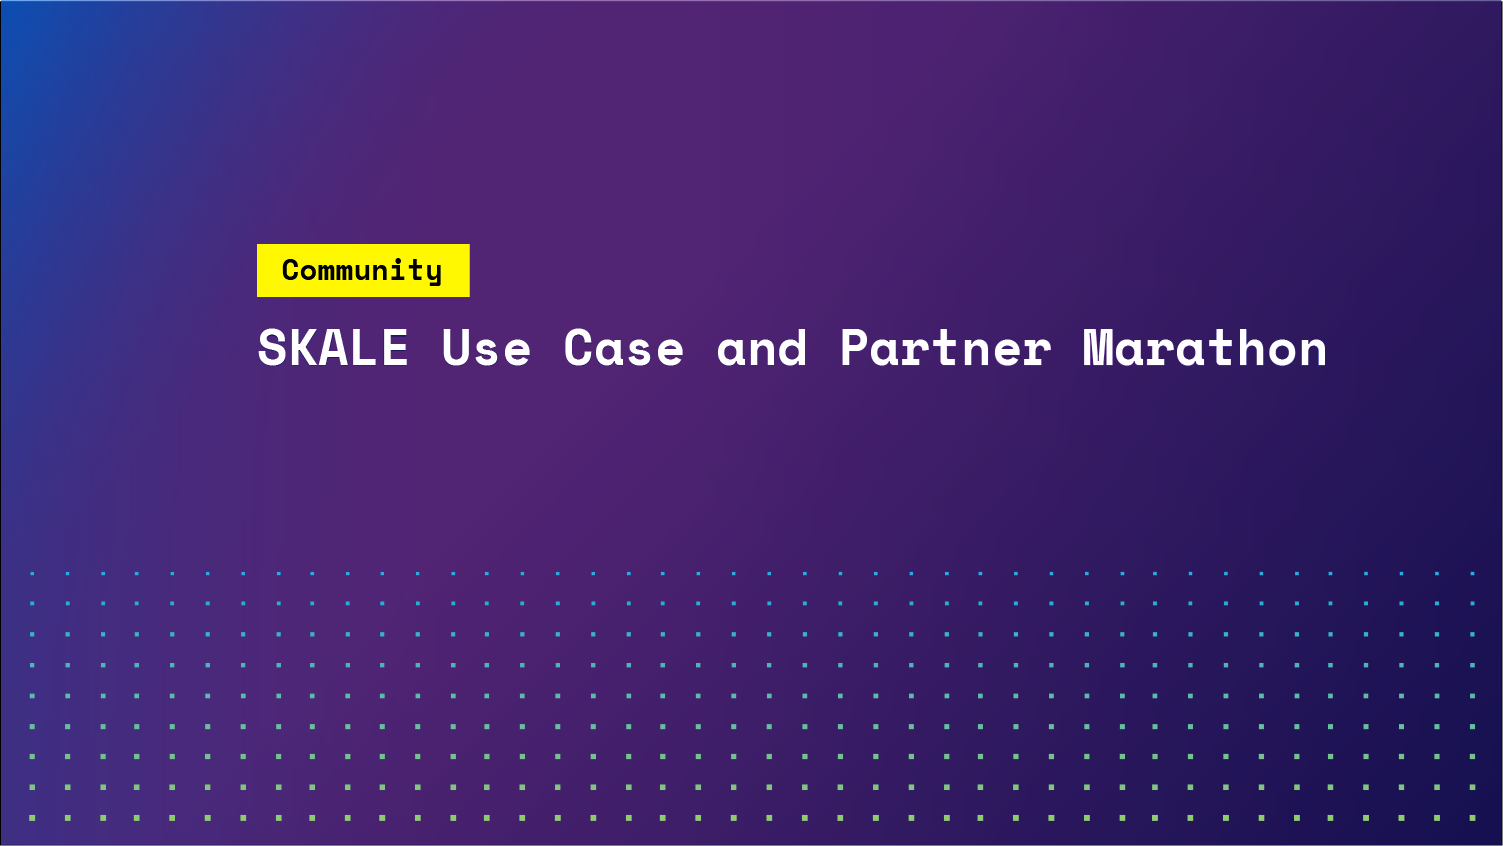 SKALE Use Case and Partner Marathon